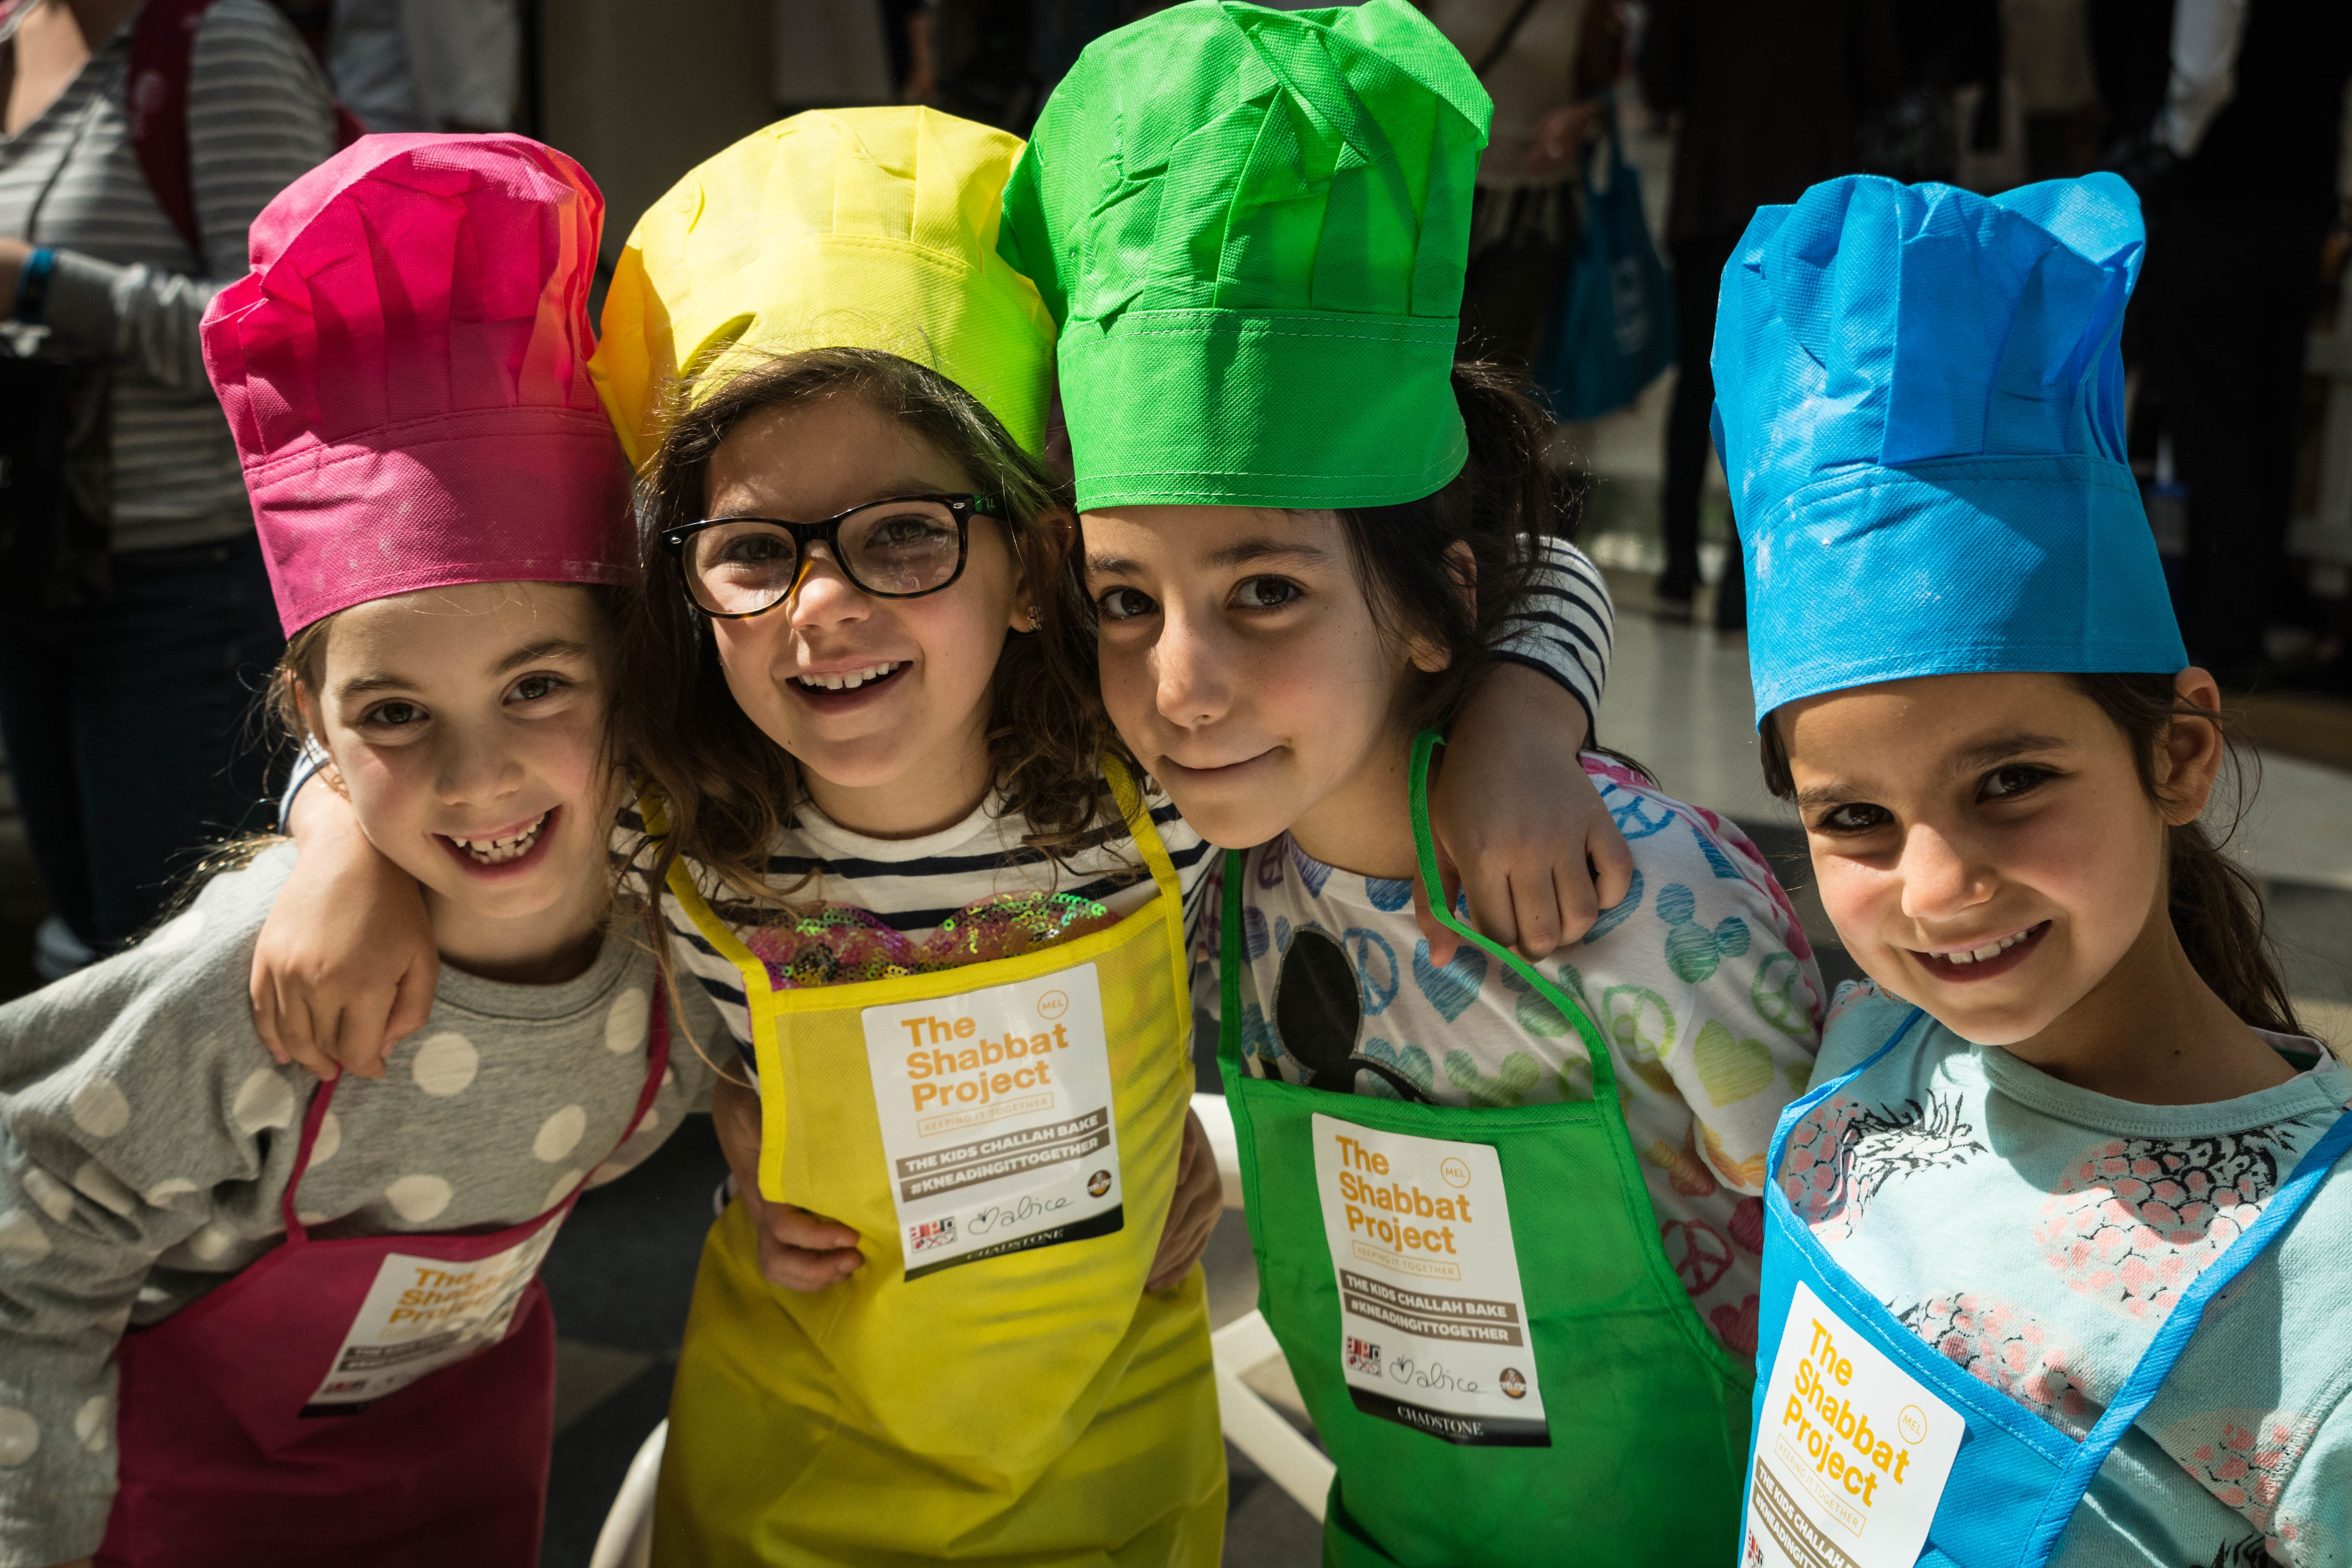 Girls in Melbourne bake challahs during The Shabbat Project (The Shabbat Project)